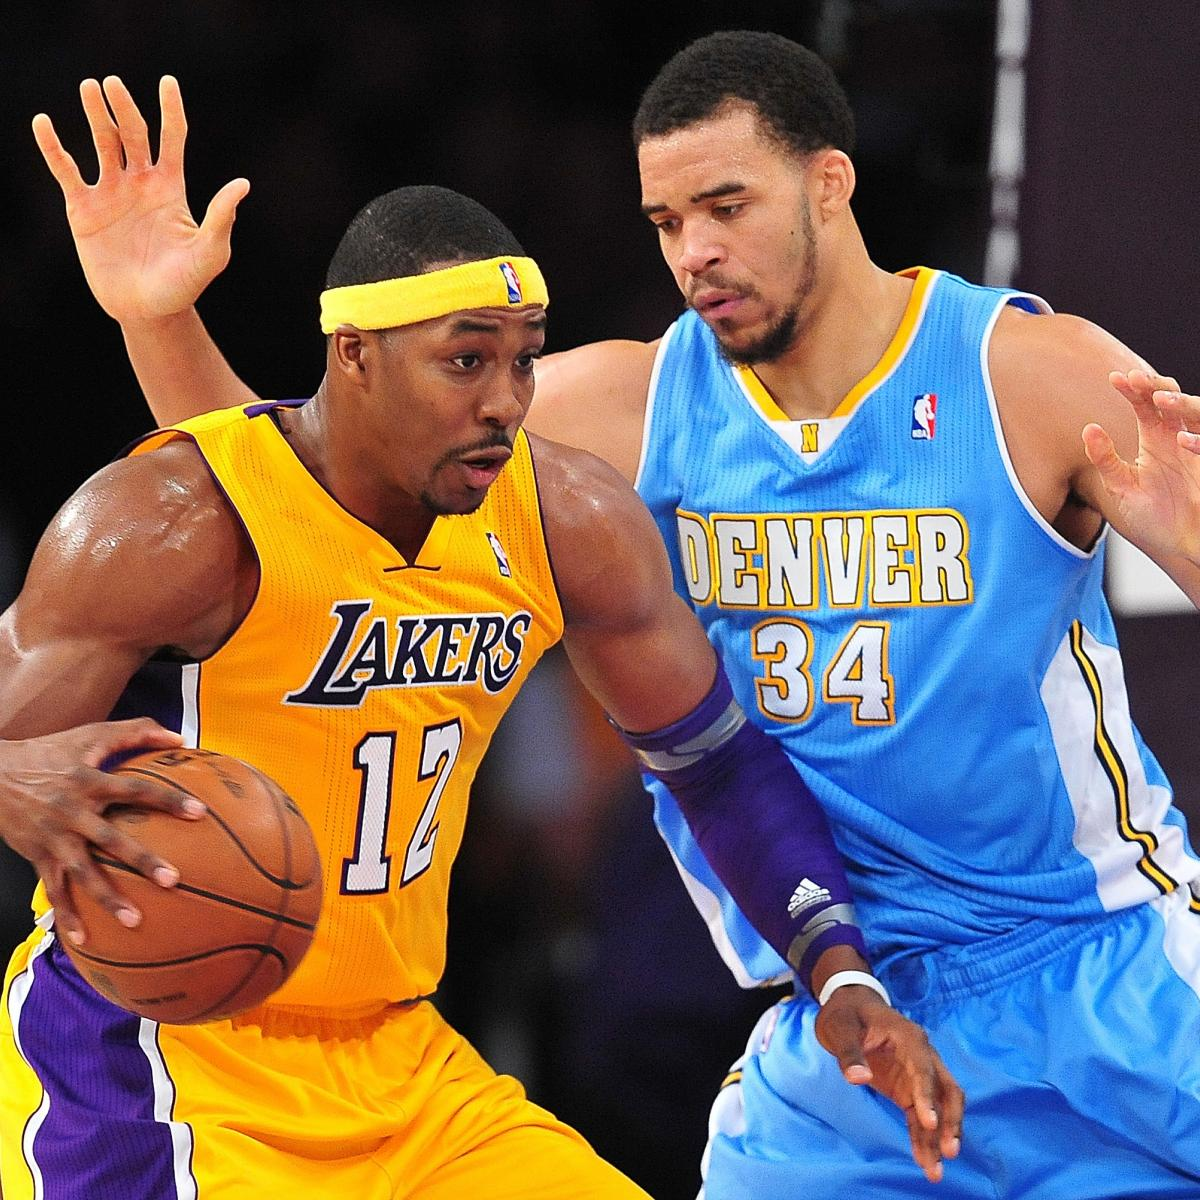 Los Angeles Lakers Vs. Denver Nuggets: Preview, Analysis